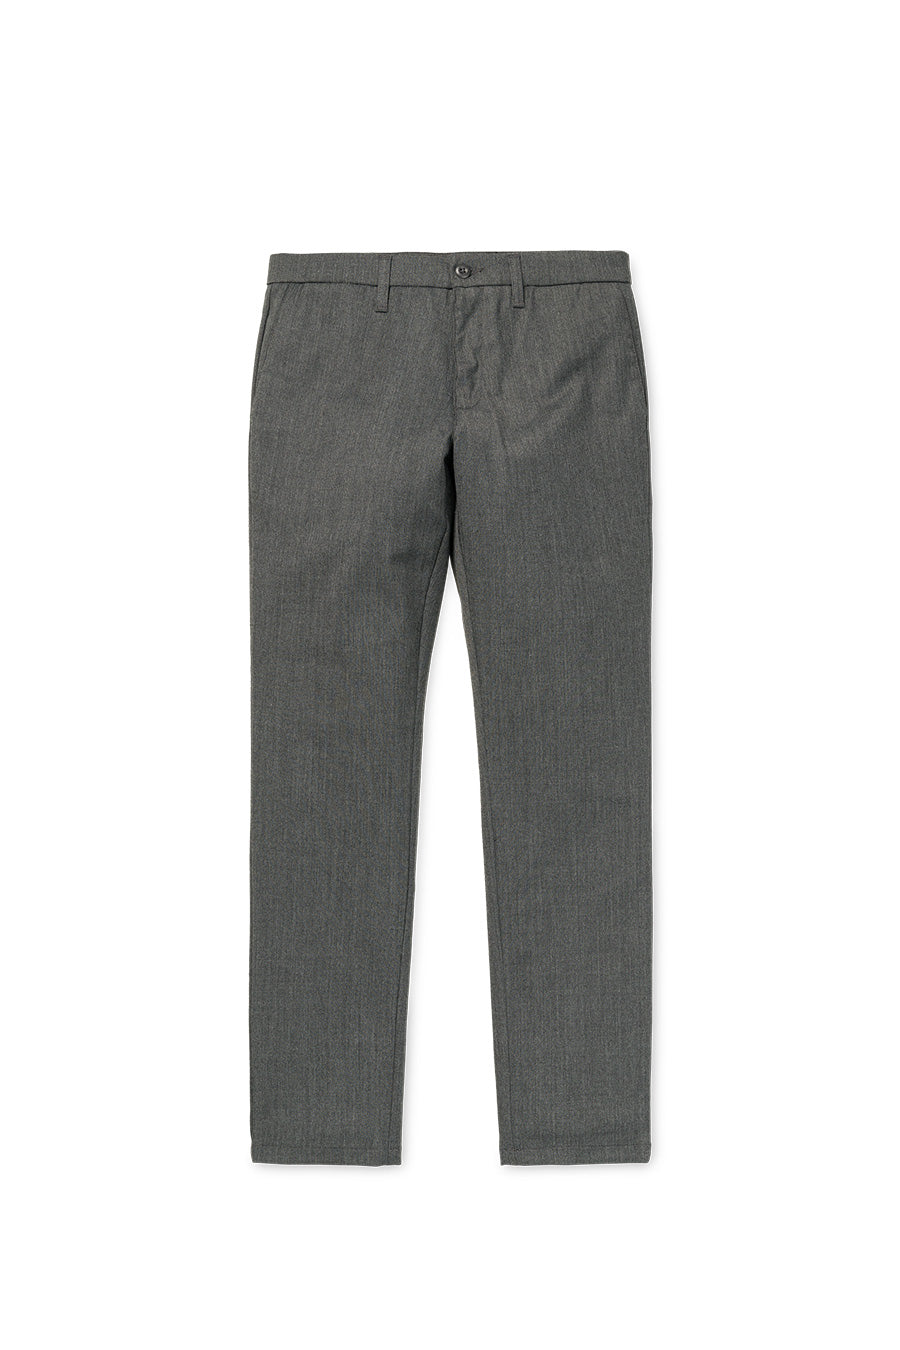 Carhartt WIP - Grey Heather Wool Sid Pants | 1032 SPACE